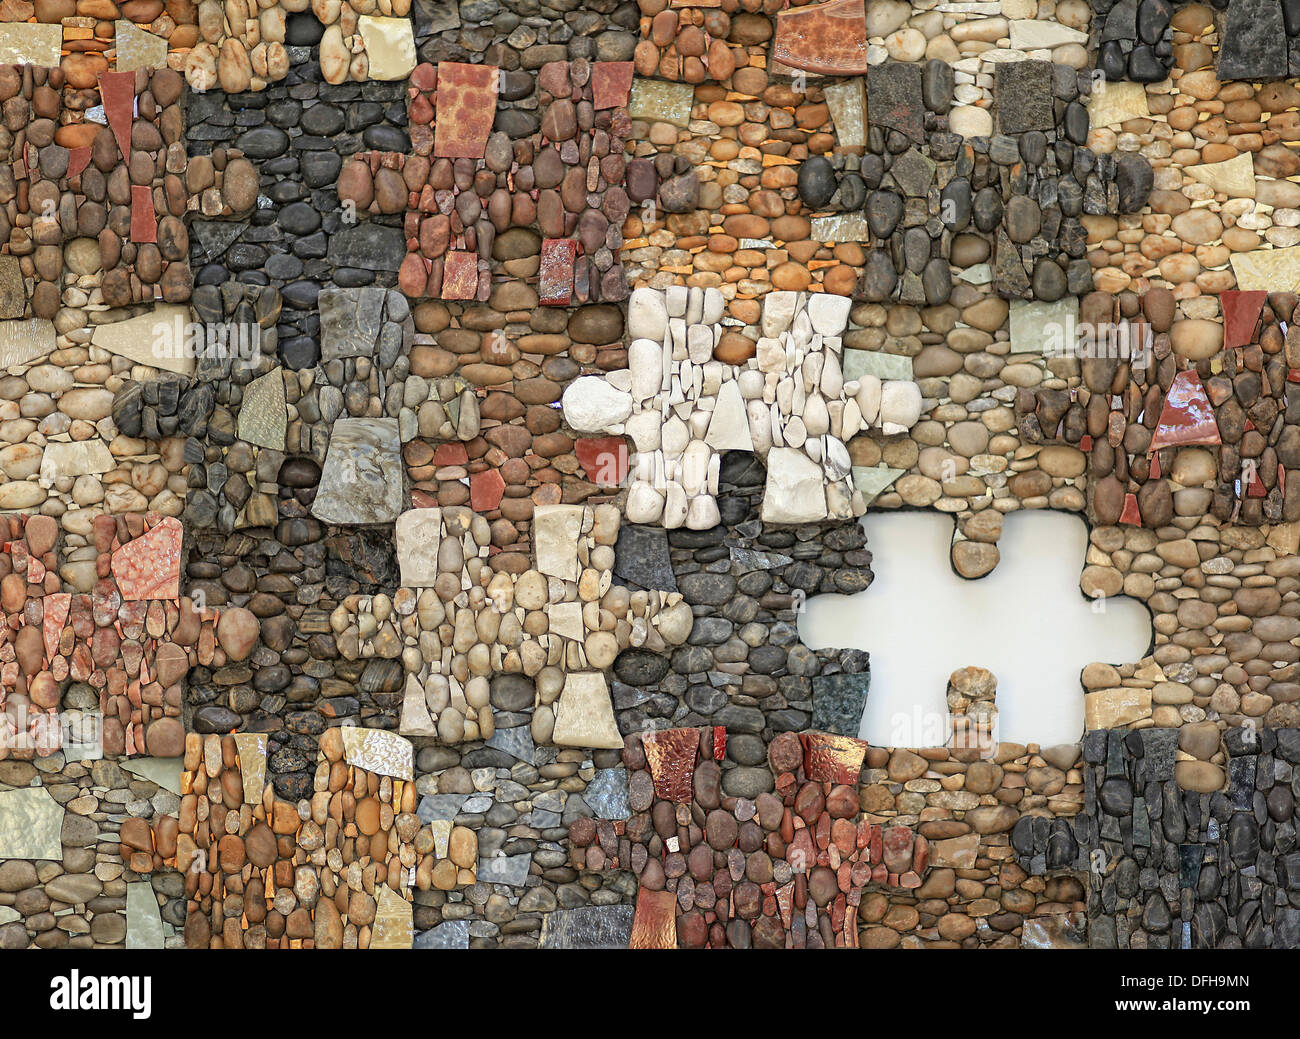 A jigsaw puzzle with missing piece. Mosaic made of materials like stones, pebbles, marble and glass. Scuola Mosaicisti del Friuli, Italy. - Stock Image